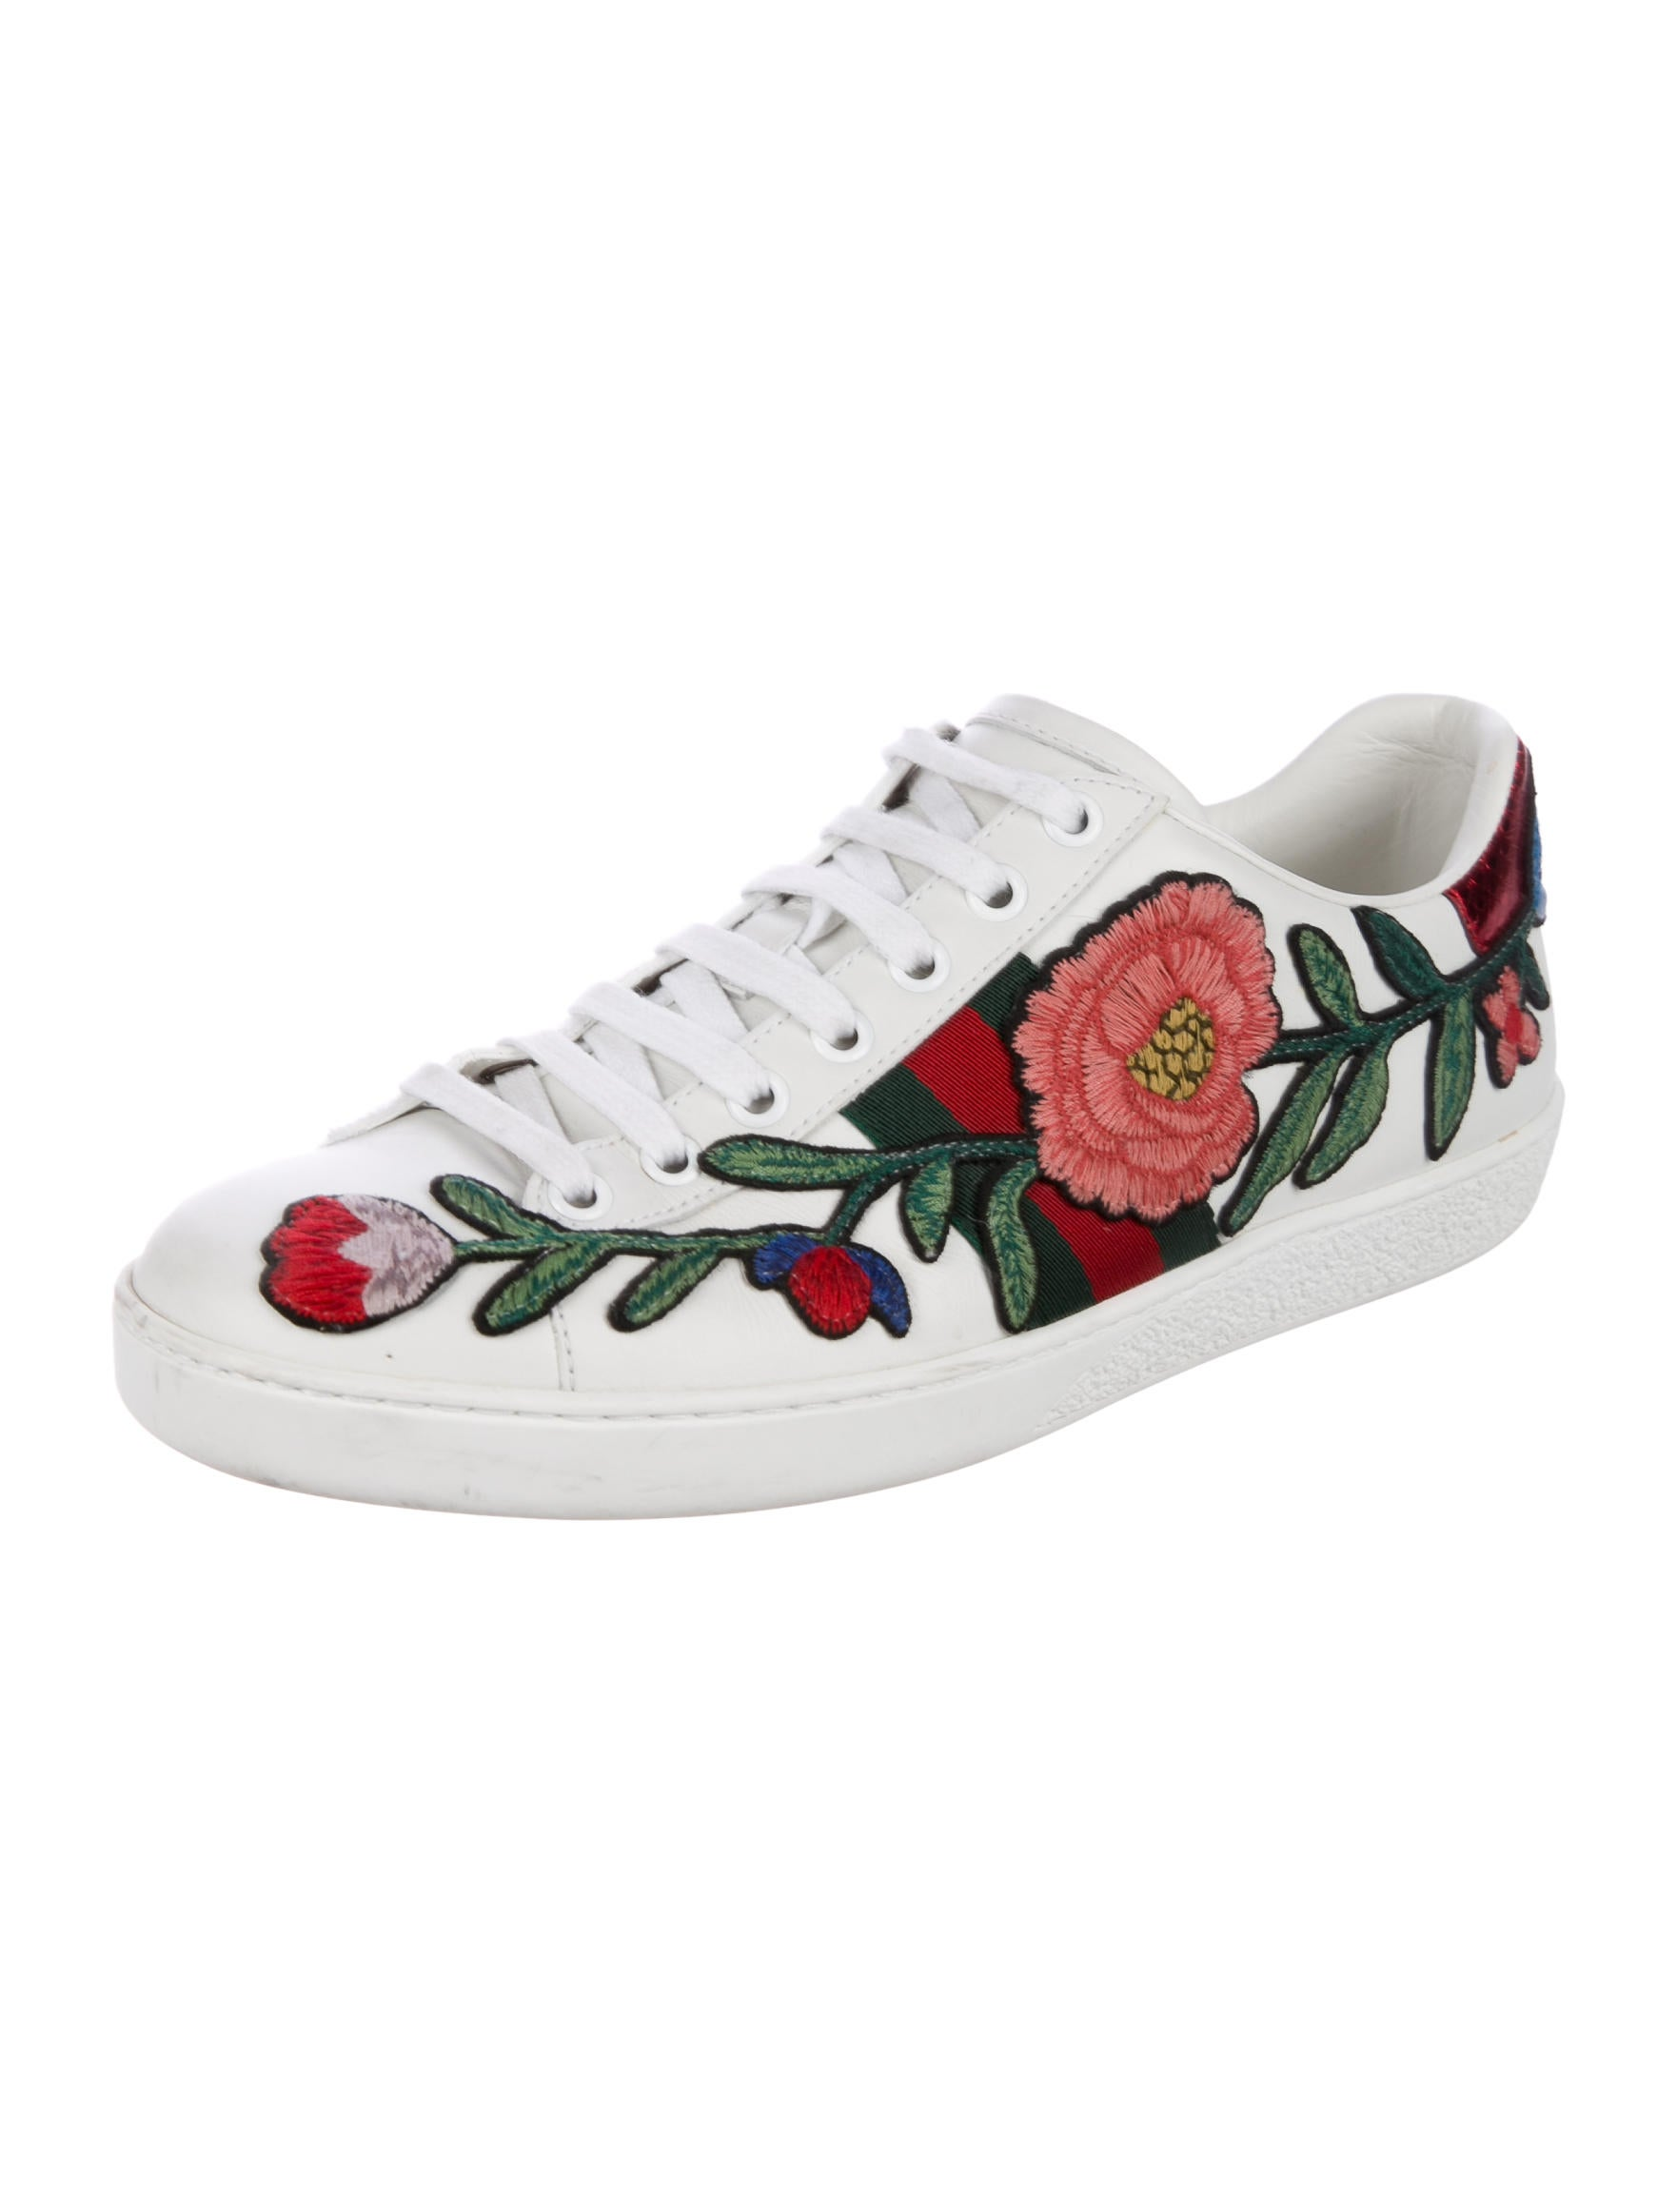 gucci new ace floral snakeskin sneakers - shoes